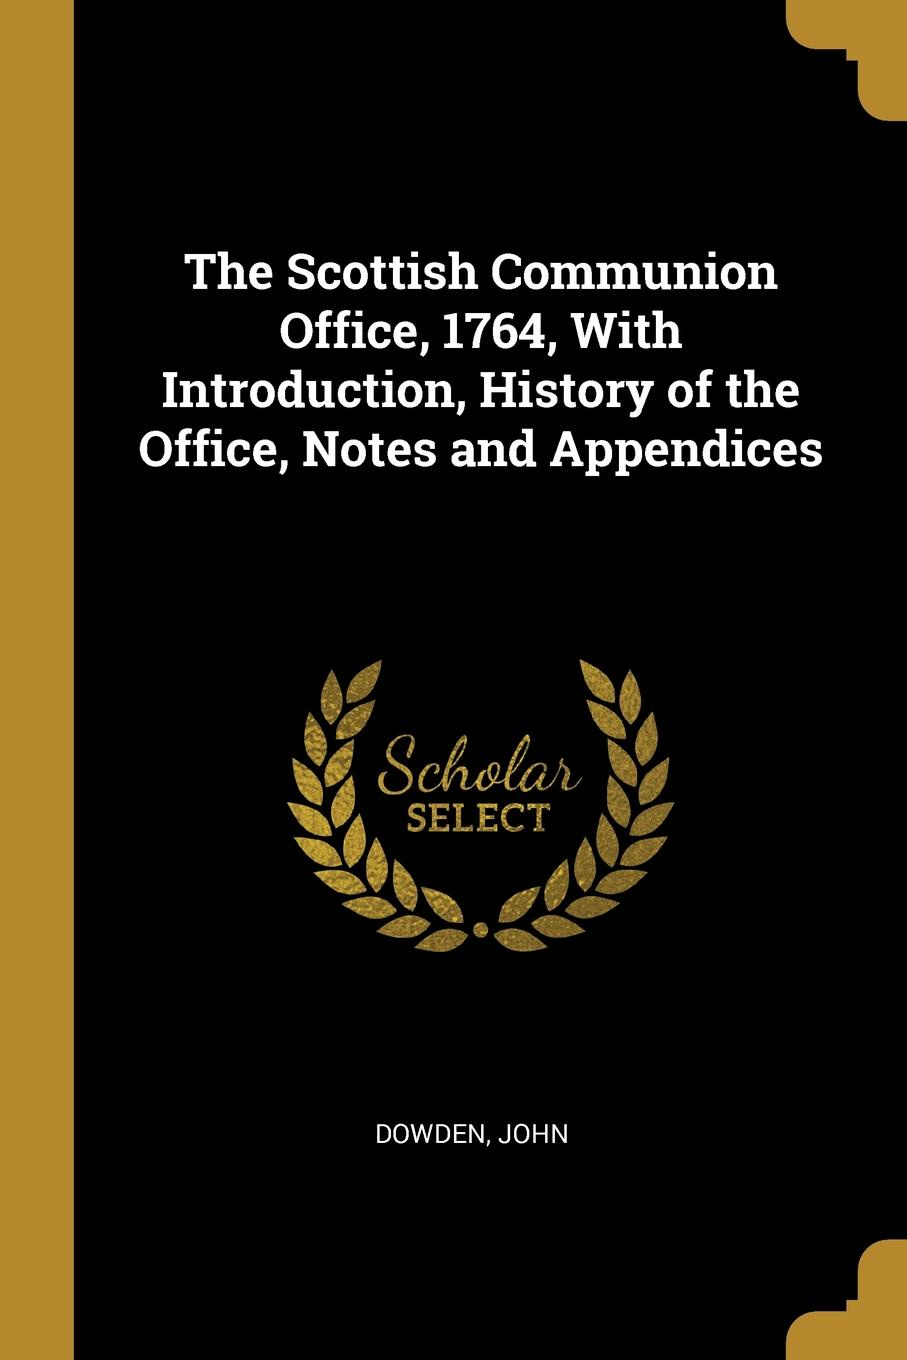 Dowden John The Scottish Communion Office, 1764, With Introduction, History of the Office, Notes and Appendices dowden john bp of edinburgh the annotated scottish communion office